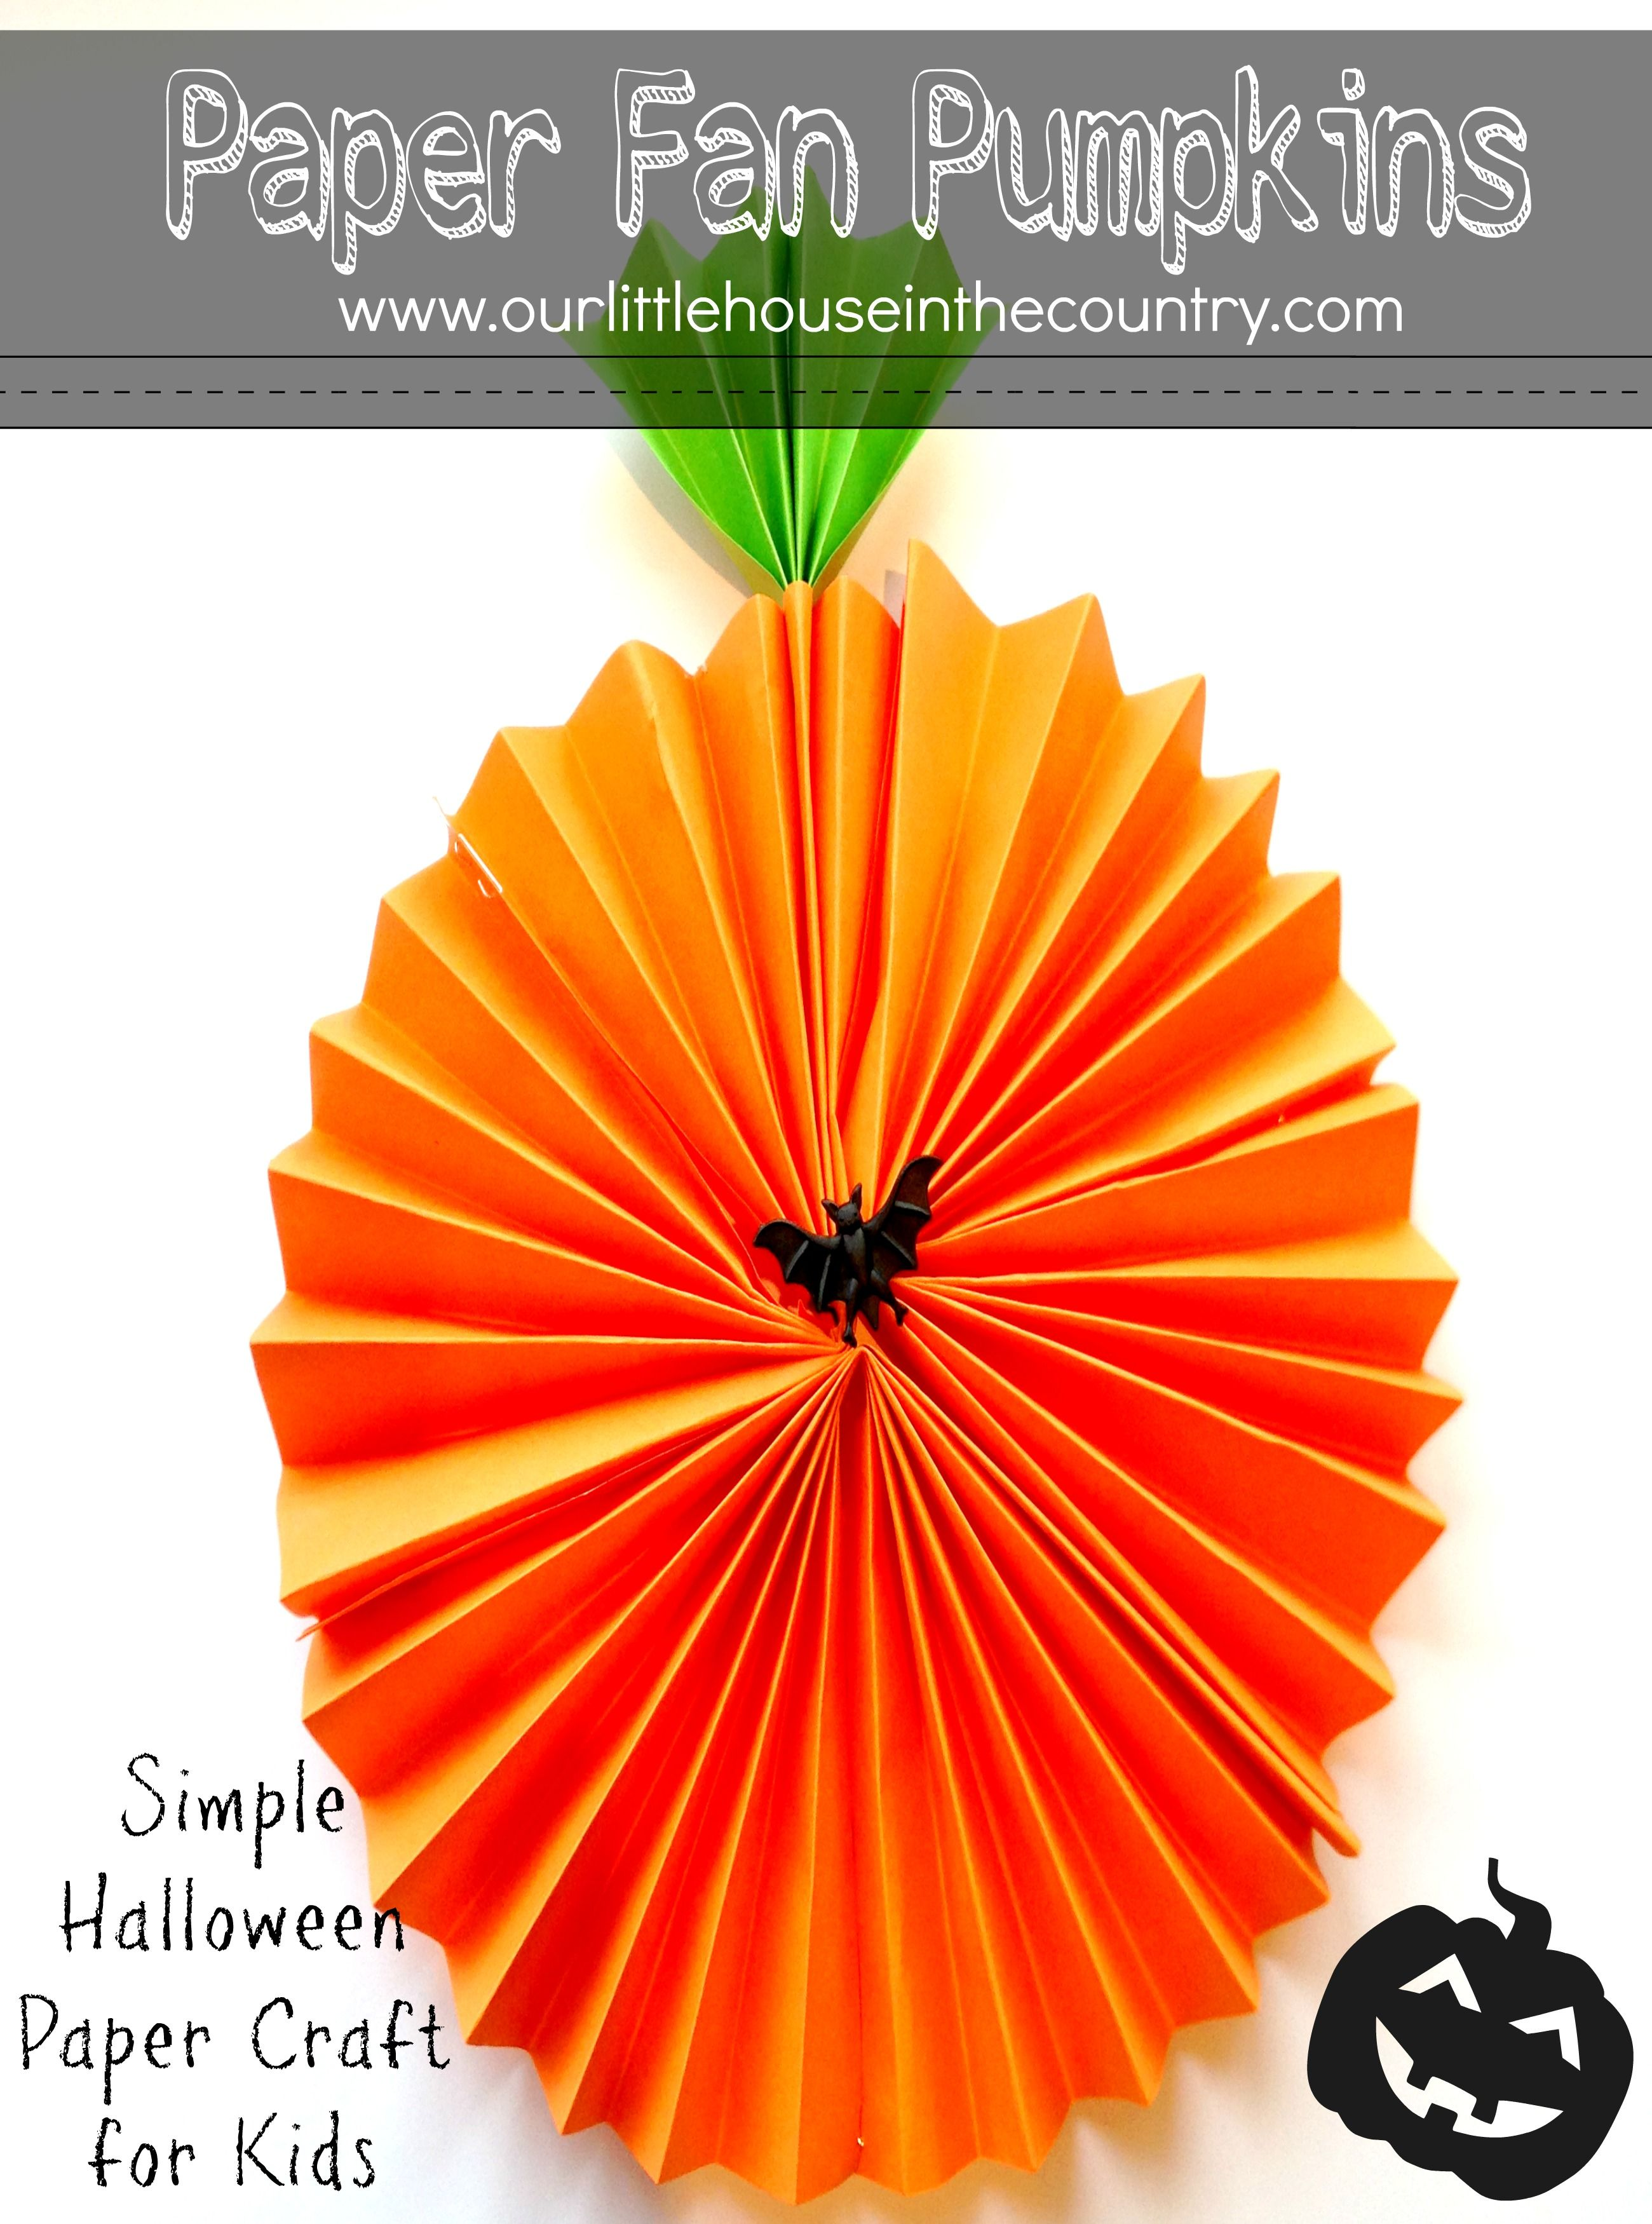 Paper Fan Pumpkin Decorations Decoration, Fans and Craft - Kid Friendly Halloween Decorations